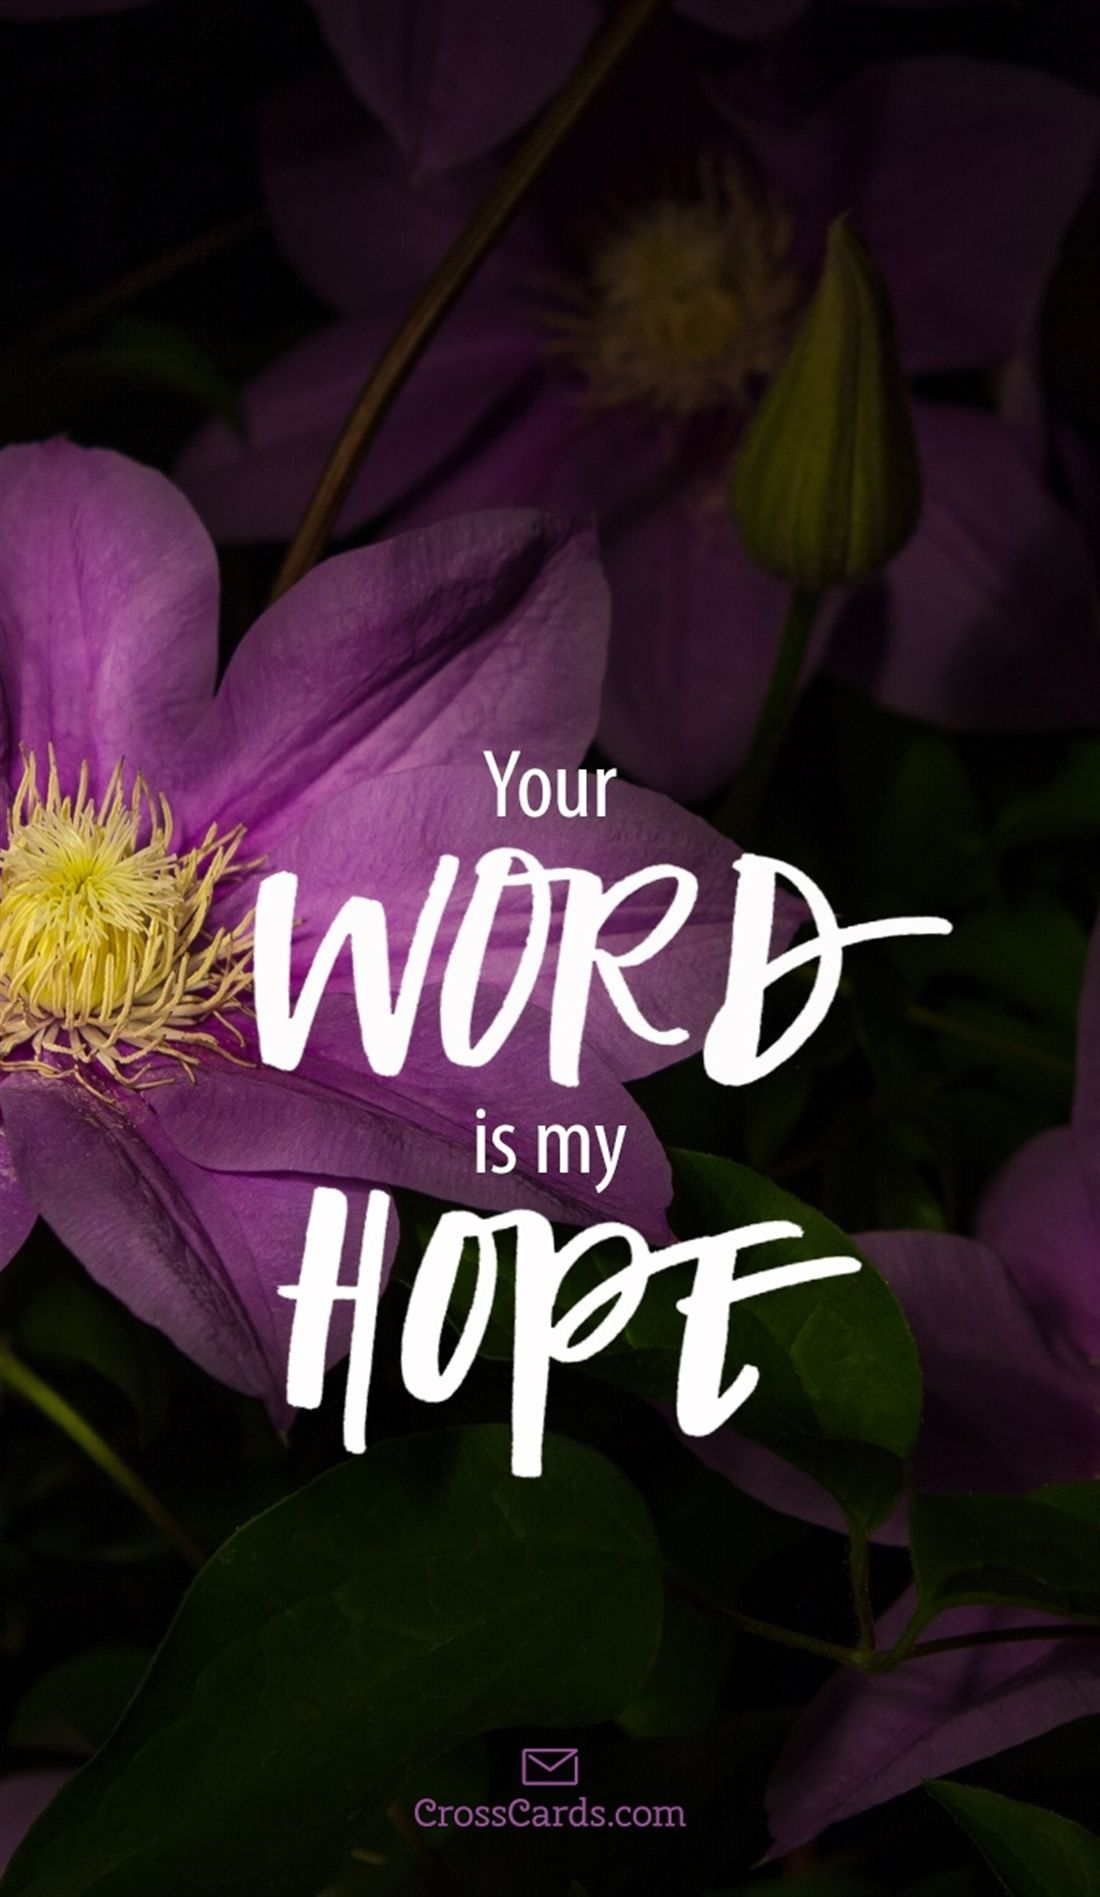 your word is my hope free christian mobile lock screen wallpaper